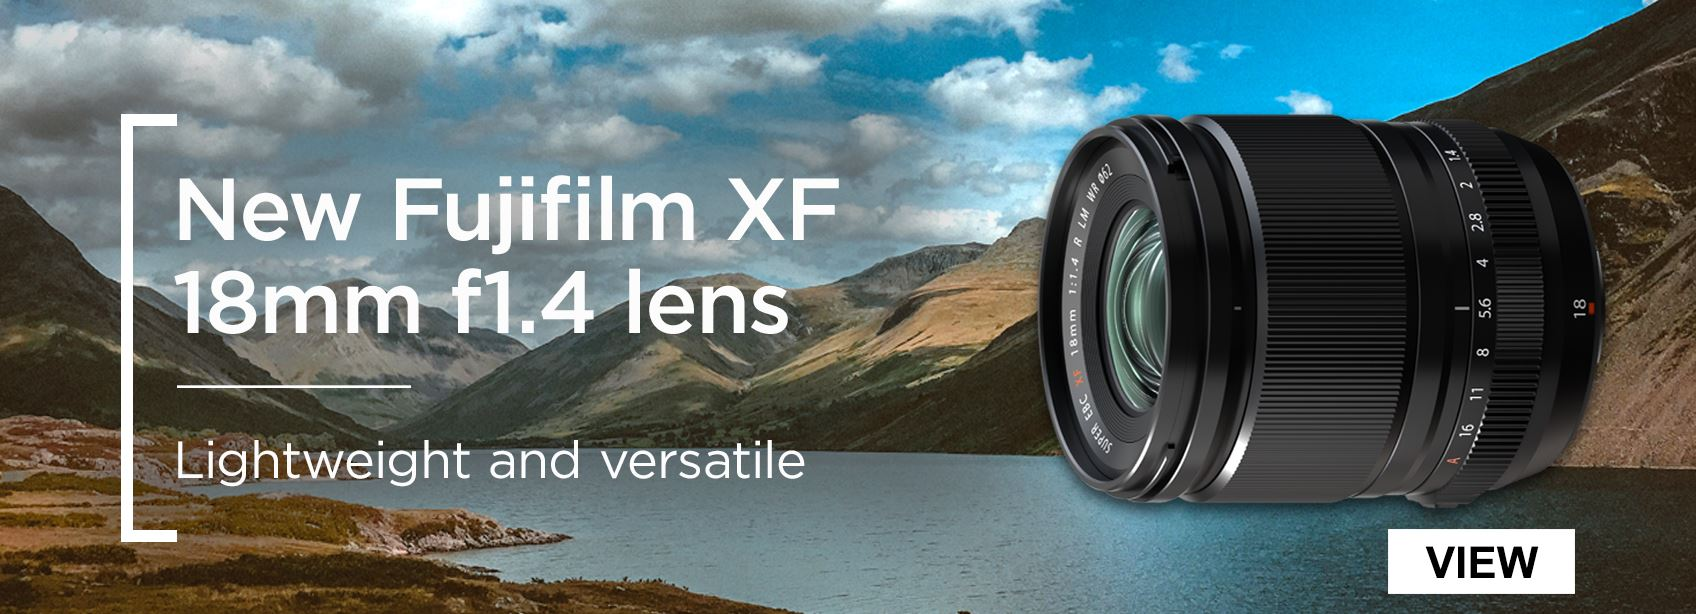 New Fujifilm XF 18mm f1.4 lens - lightweight and versatile